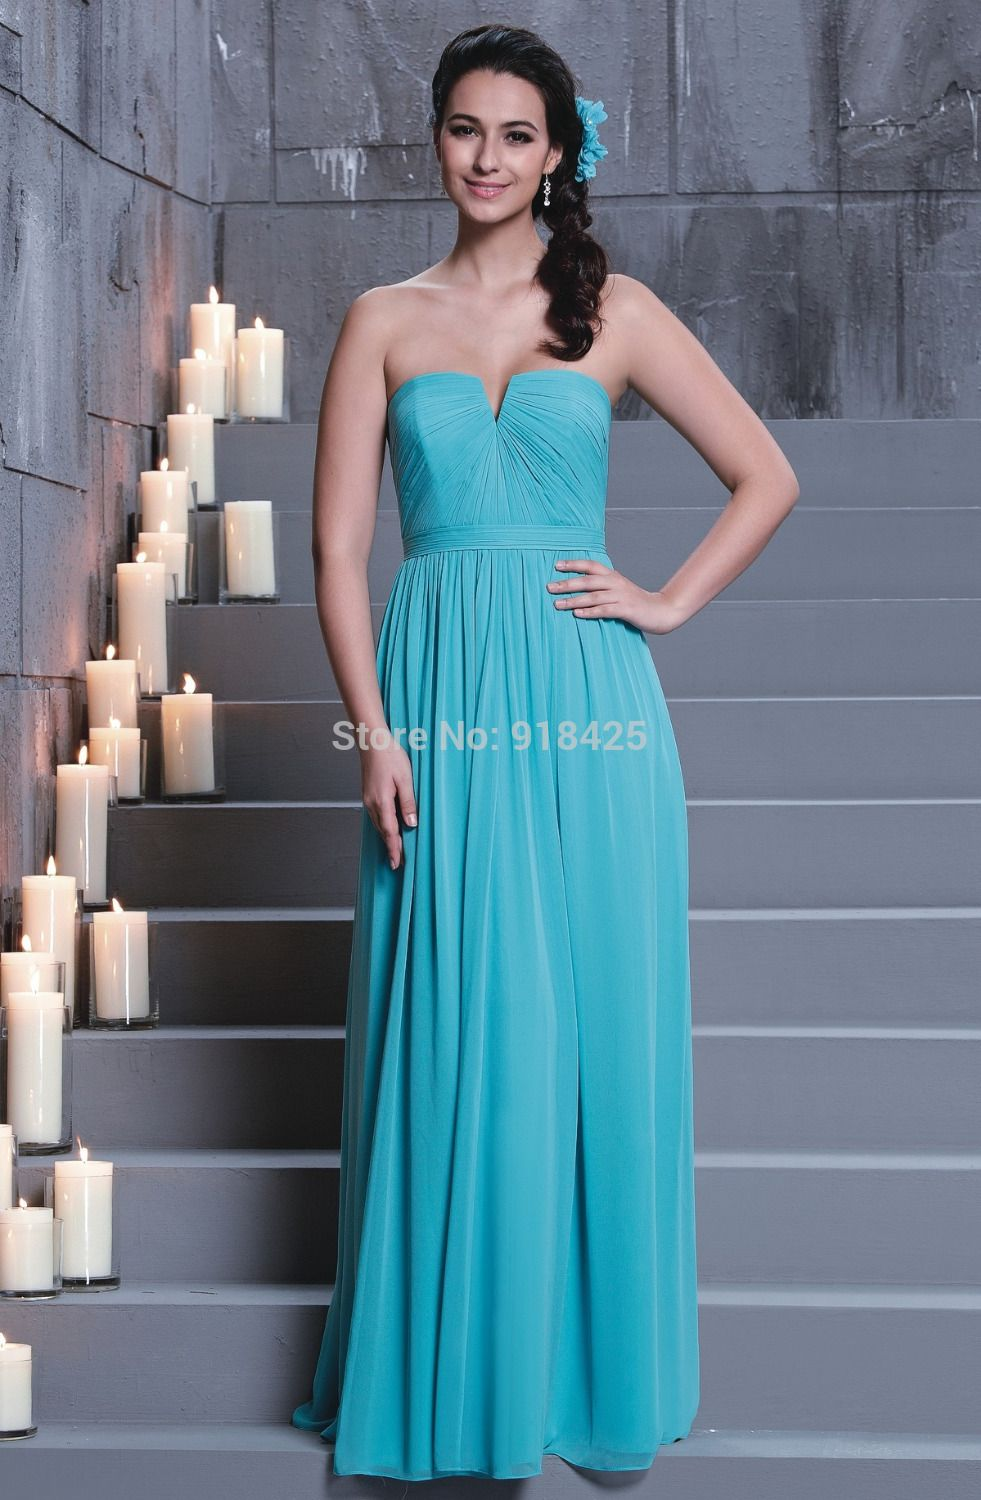 Click to buy free shipping strapless turquoise bridesmaid click to buy free shipping strapless turquoise bridesmaid dresses long chiffon party ombrellifo Image collections